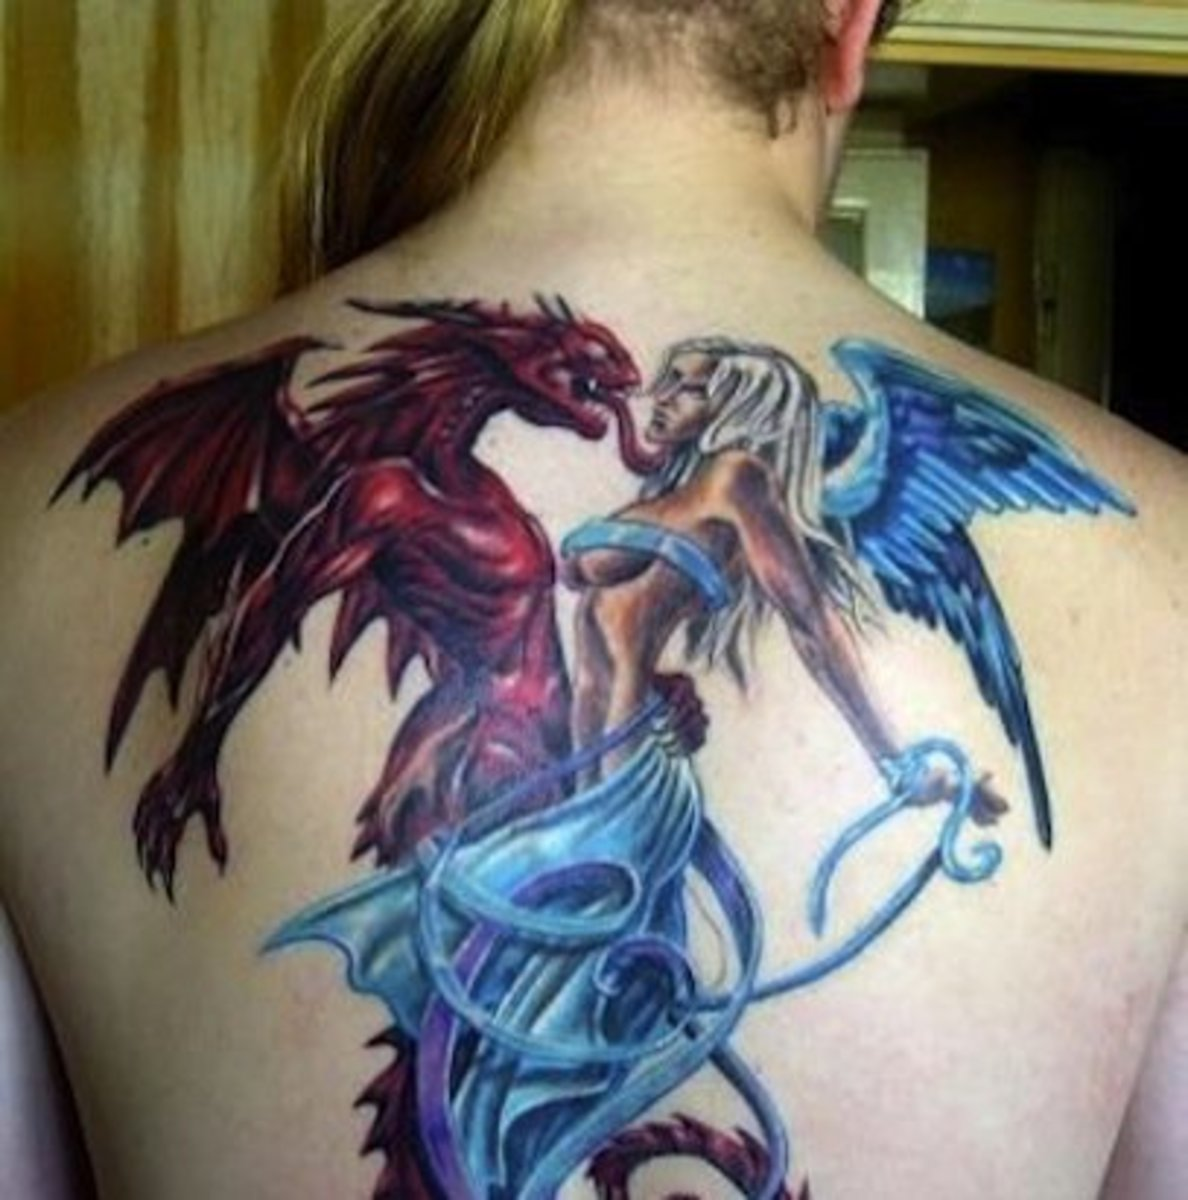 Angel And Demon Tattoo: Tattoos Of Angels And Demons